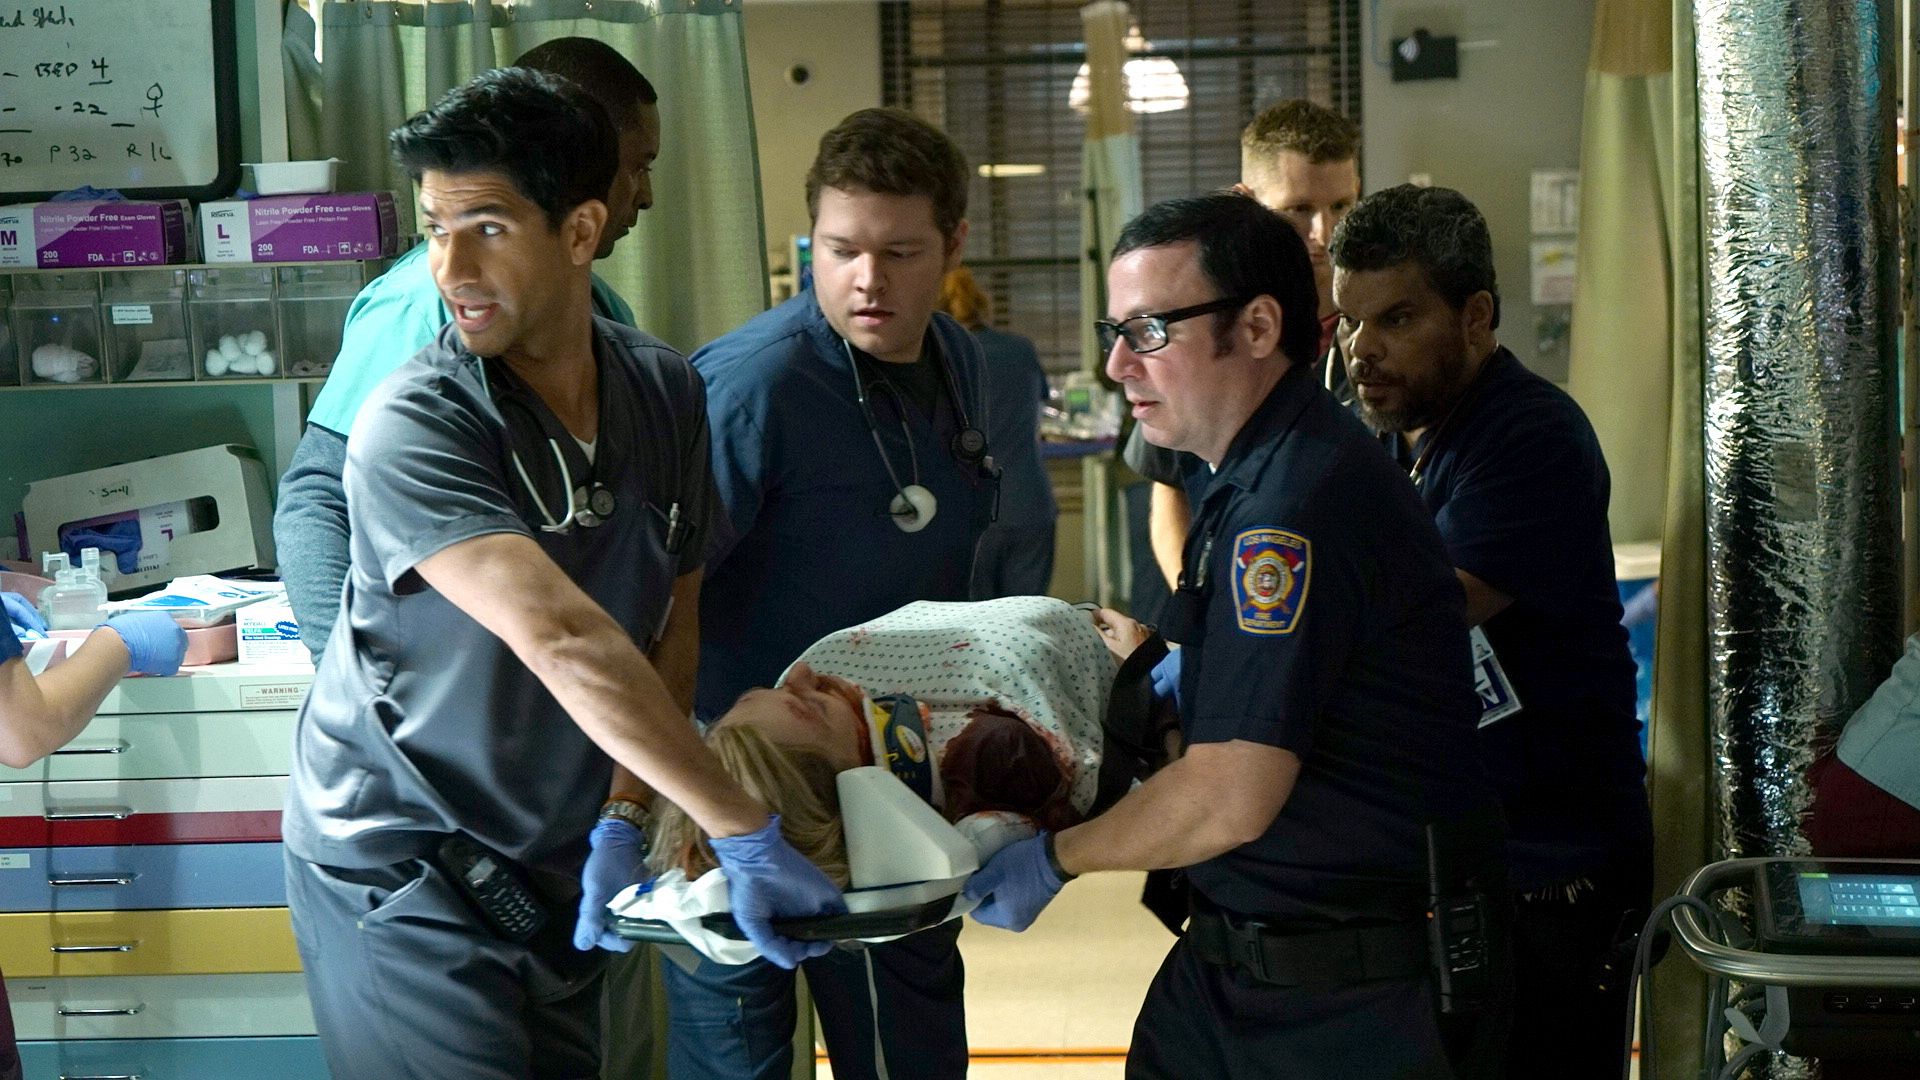 Raza Jaffrey as Dr. Neal Hudson, Harry Ford as Dr. Angus Leighton, and Luis Guzmán as Jesse Sallander